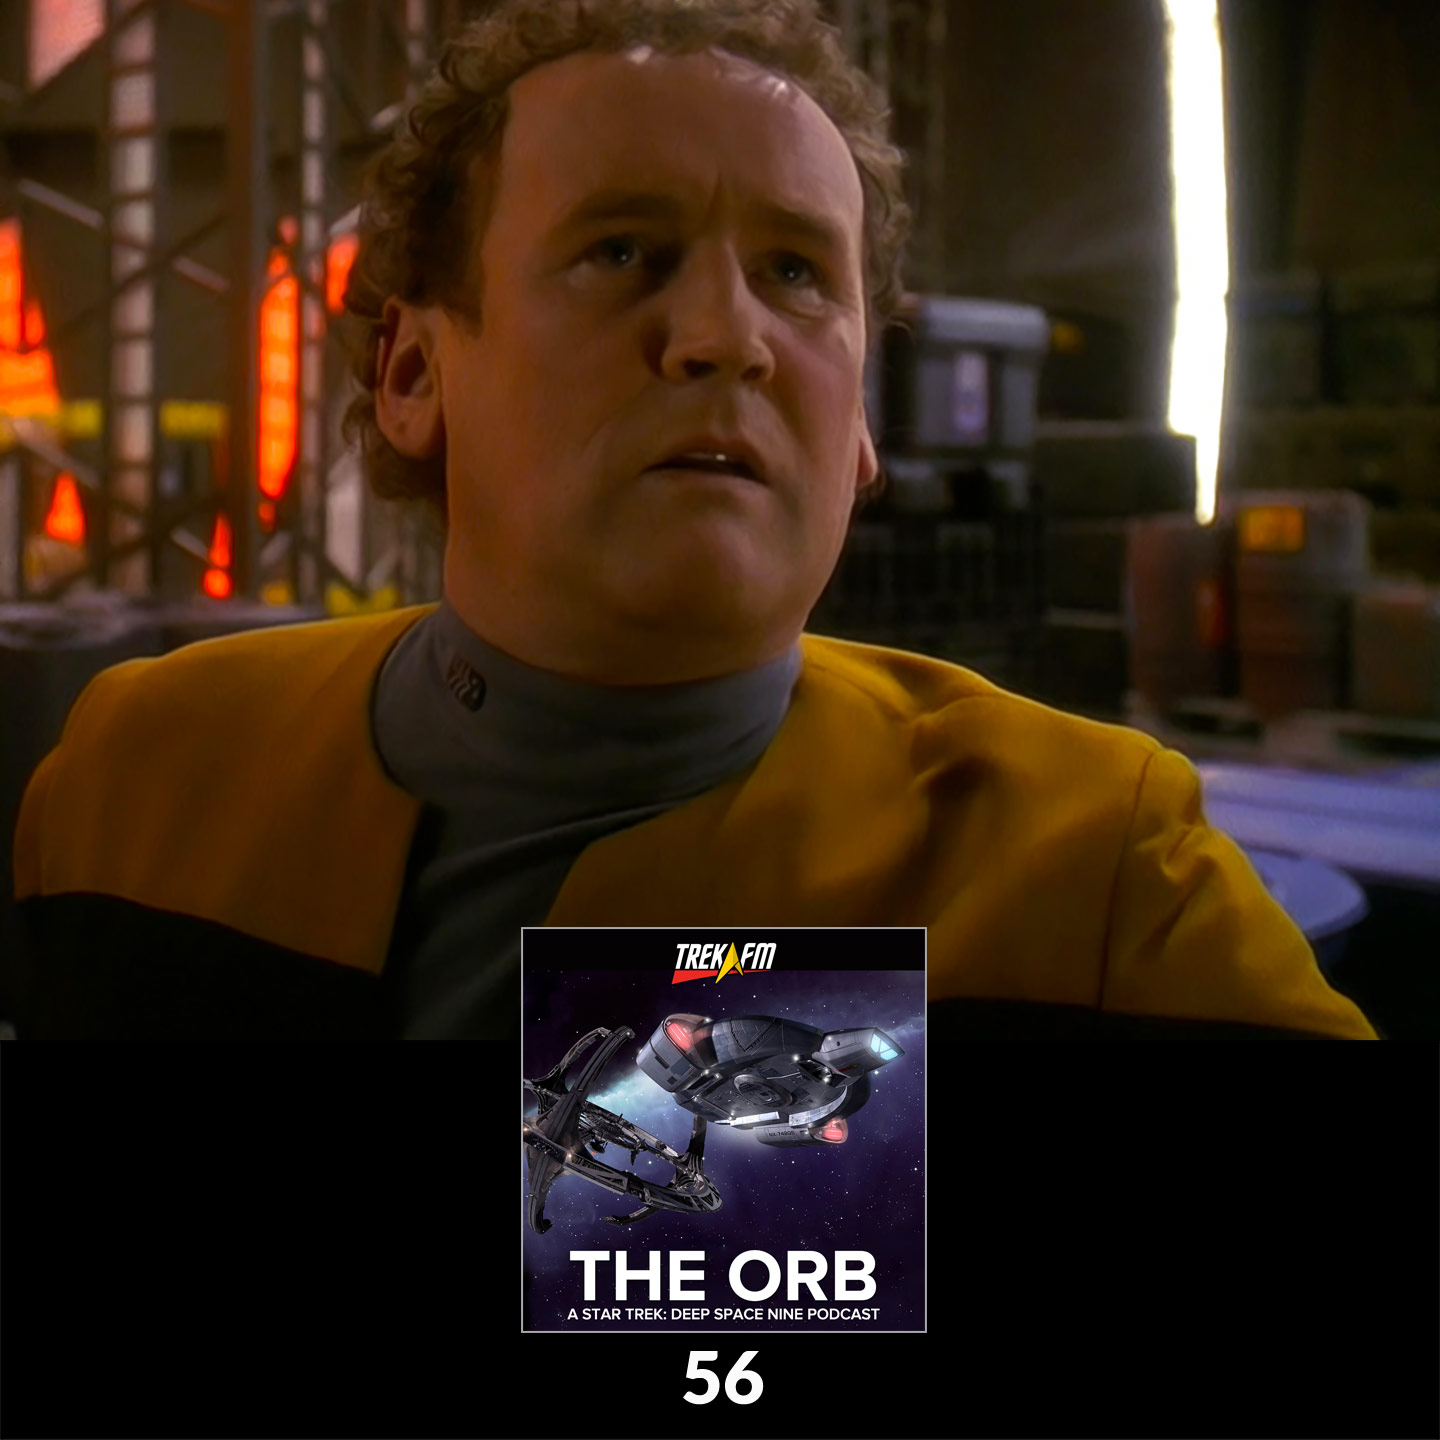 The Orb 56: The John McClane of Deep Space Nine